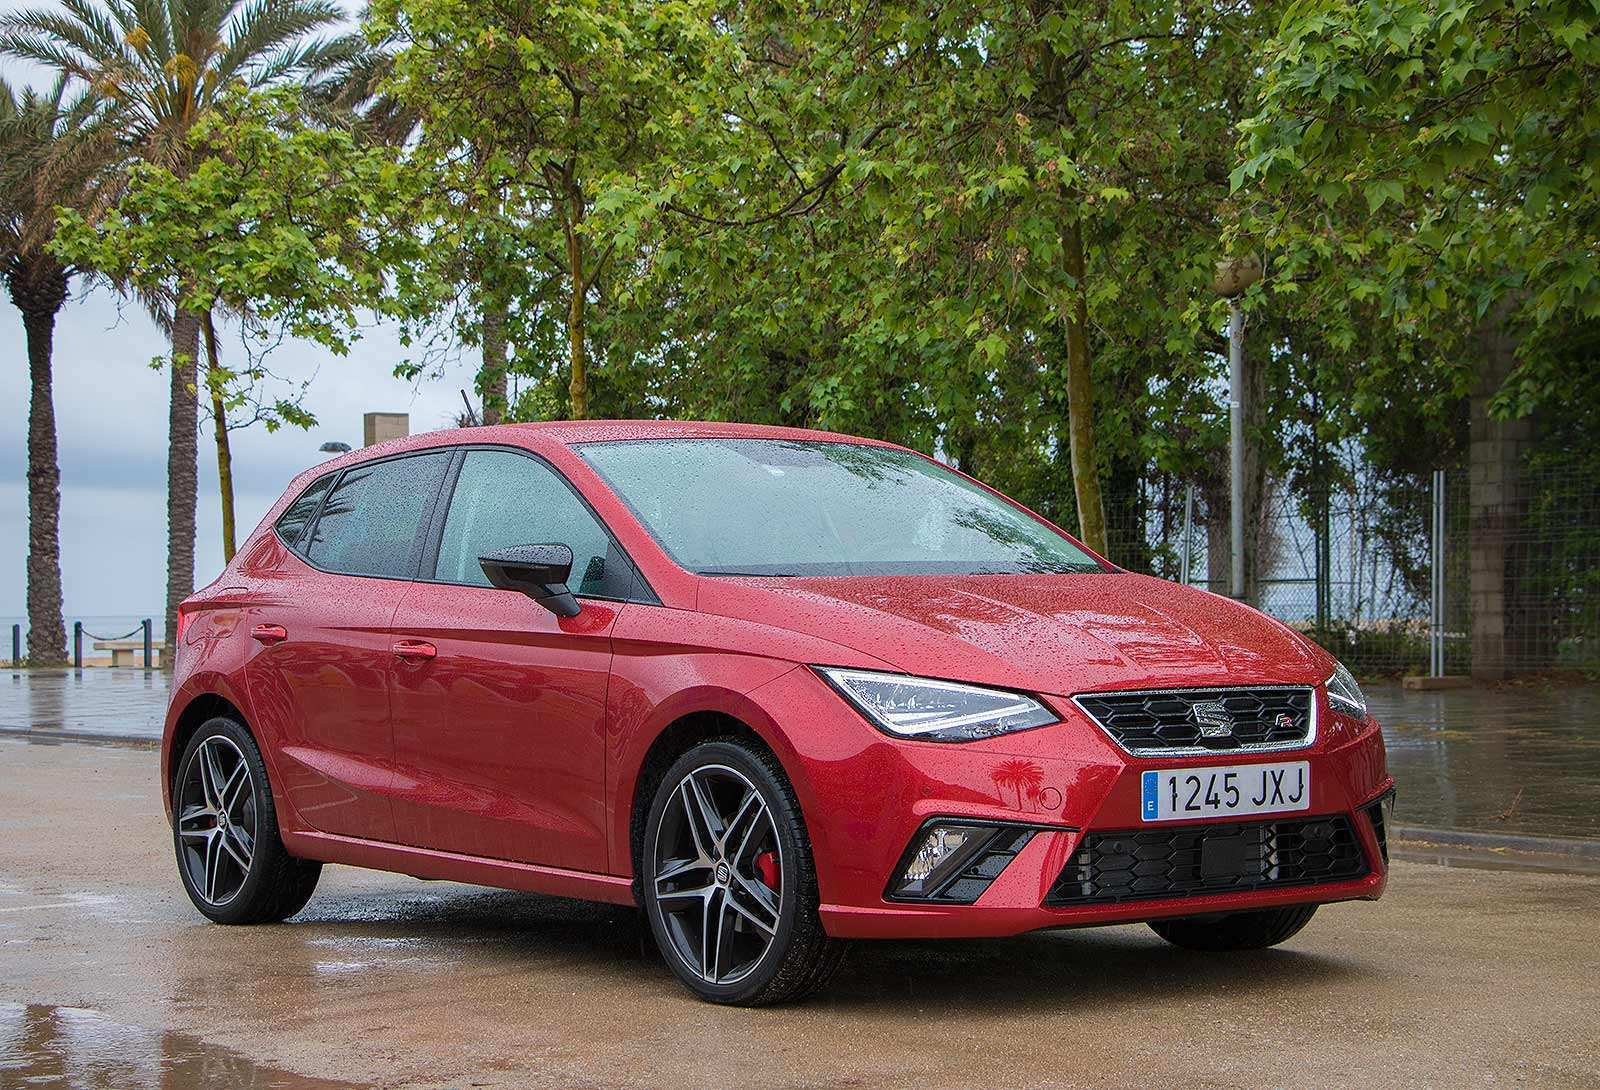 97 Gallery of 2020 Seat Ibiza Photos with 2020 Seat Ibiza